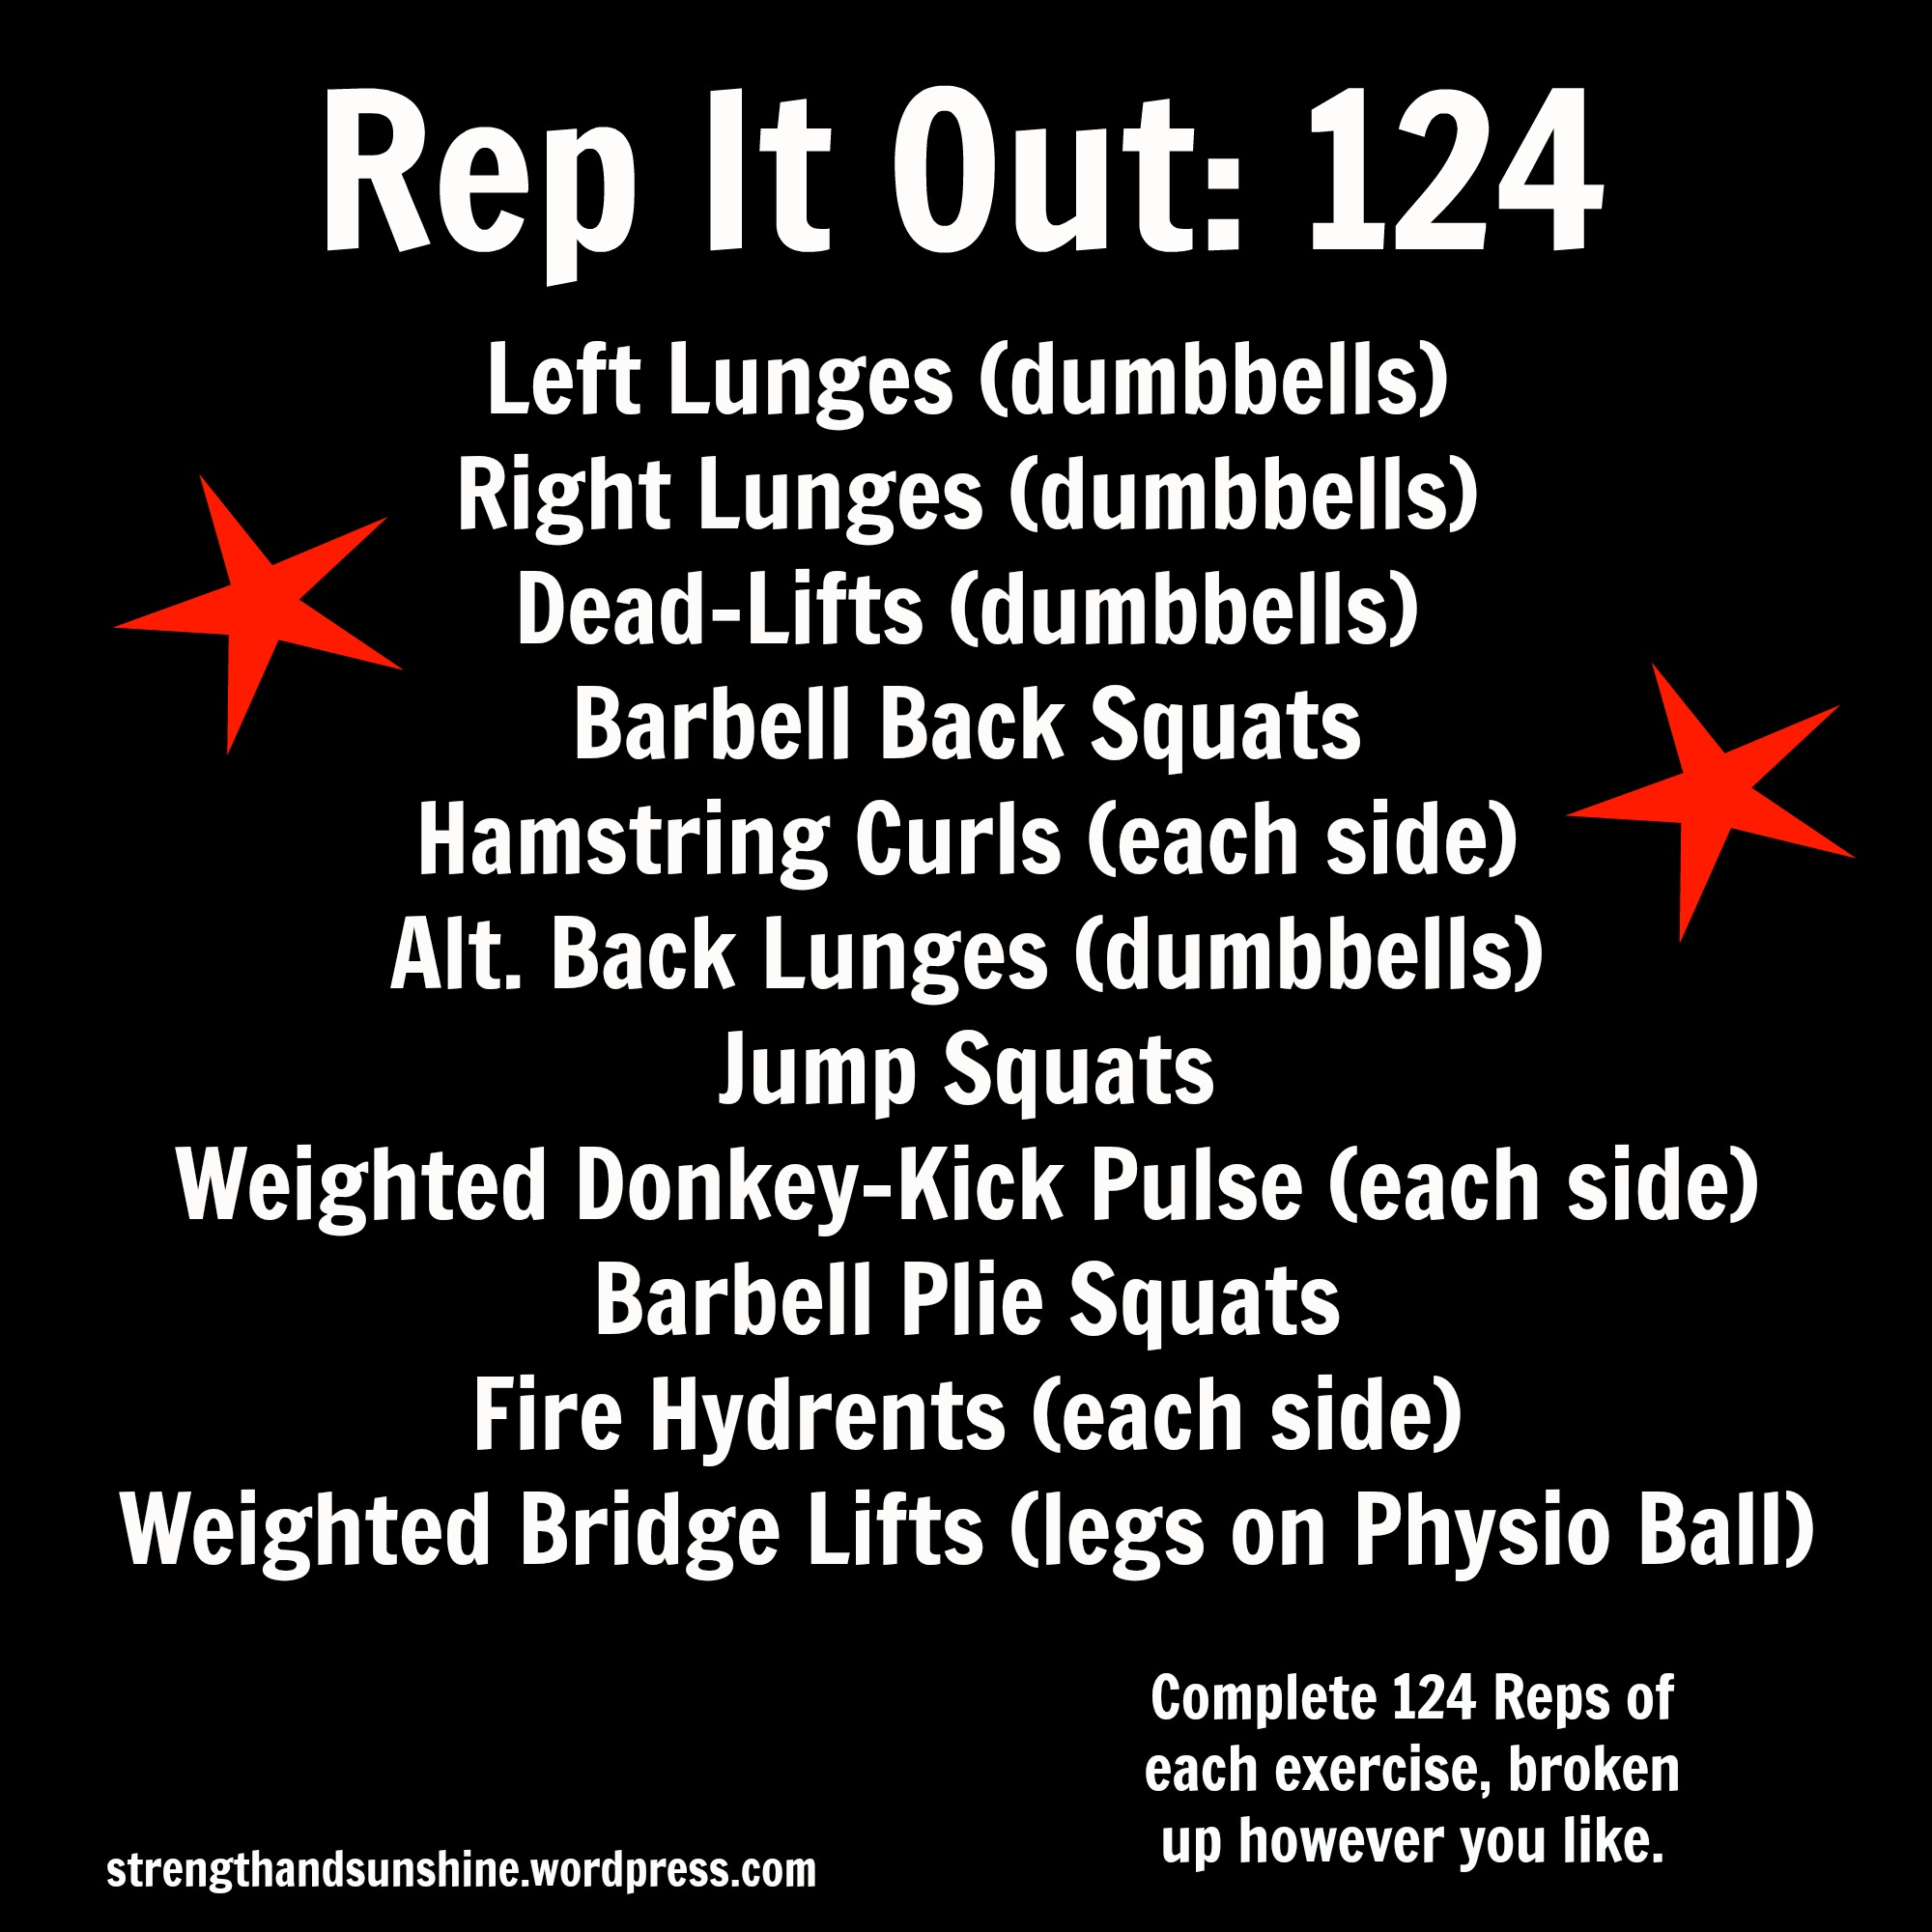 Rep It Out: 124 | Strength and Sunshine